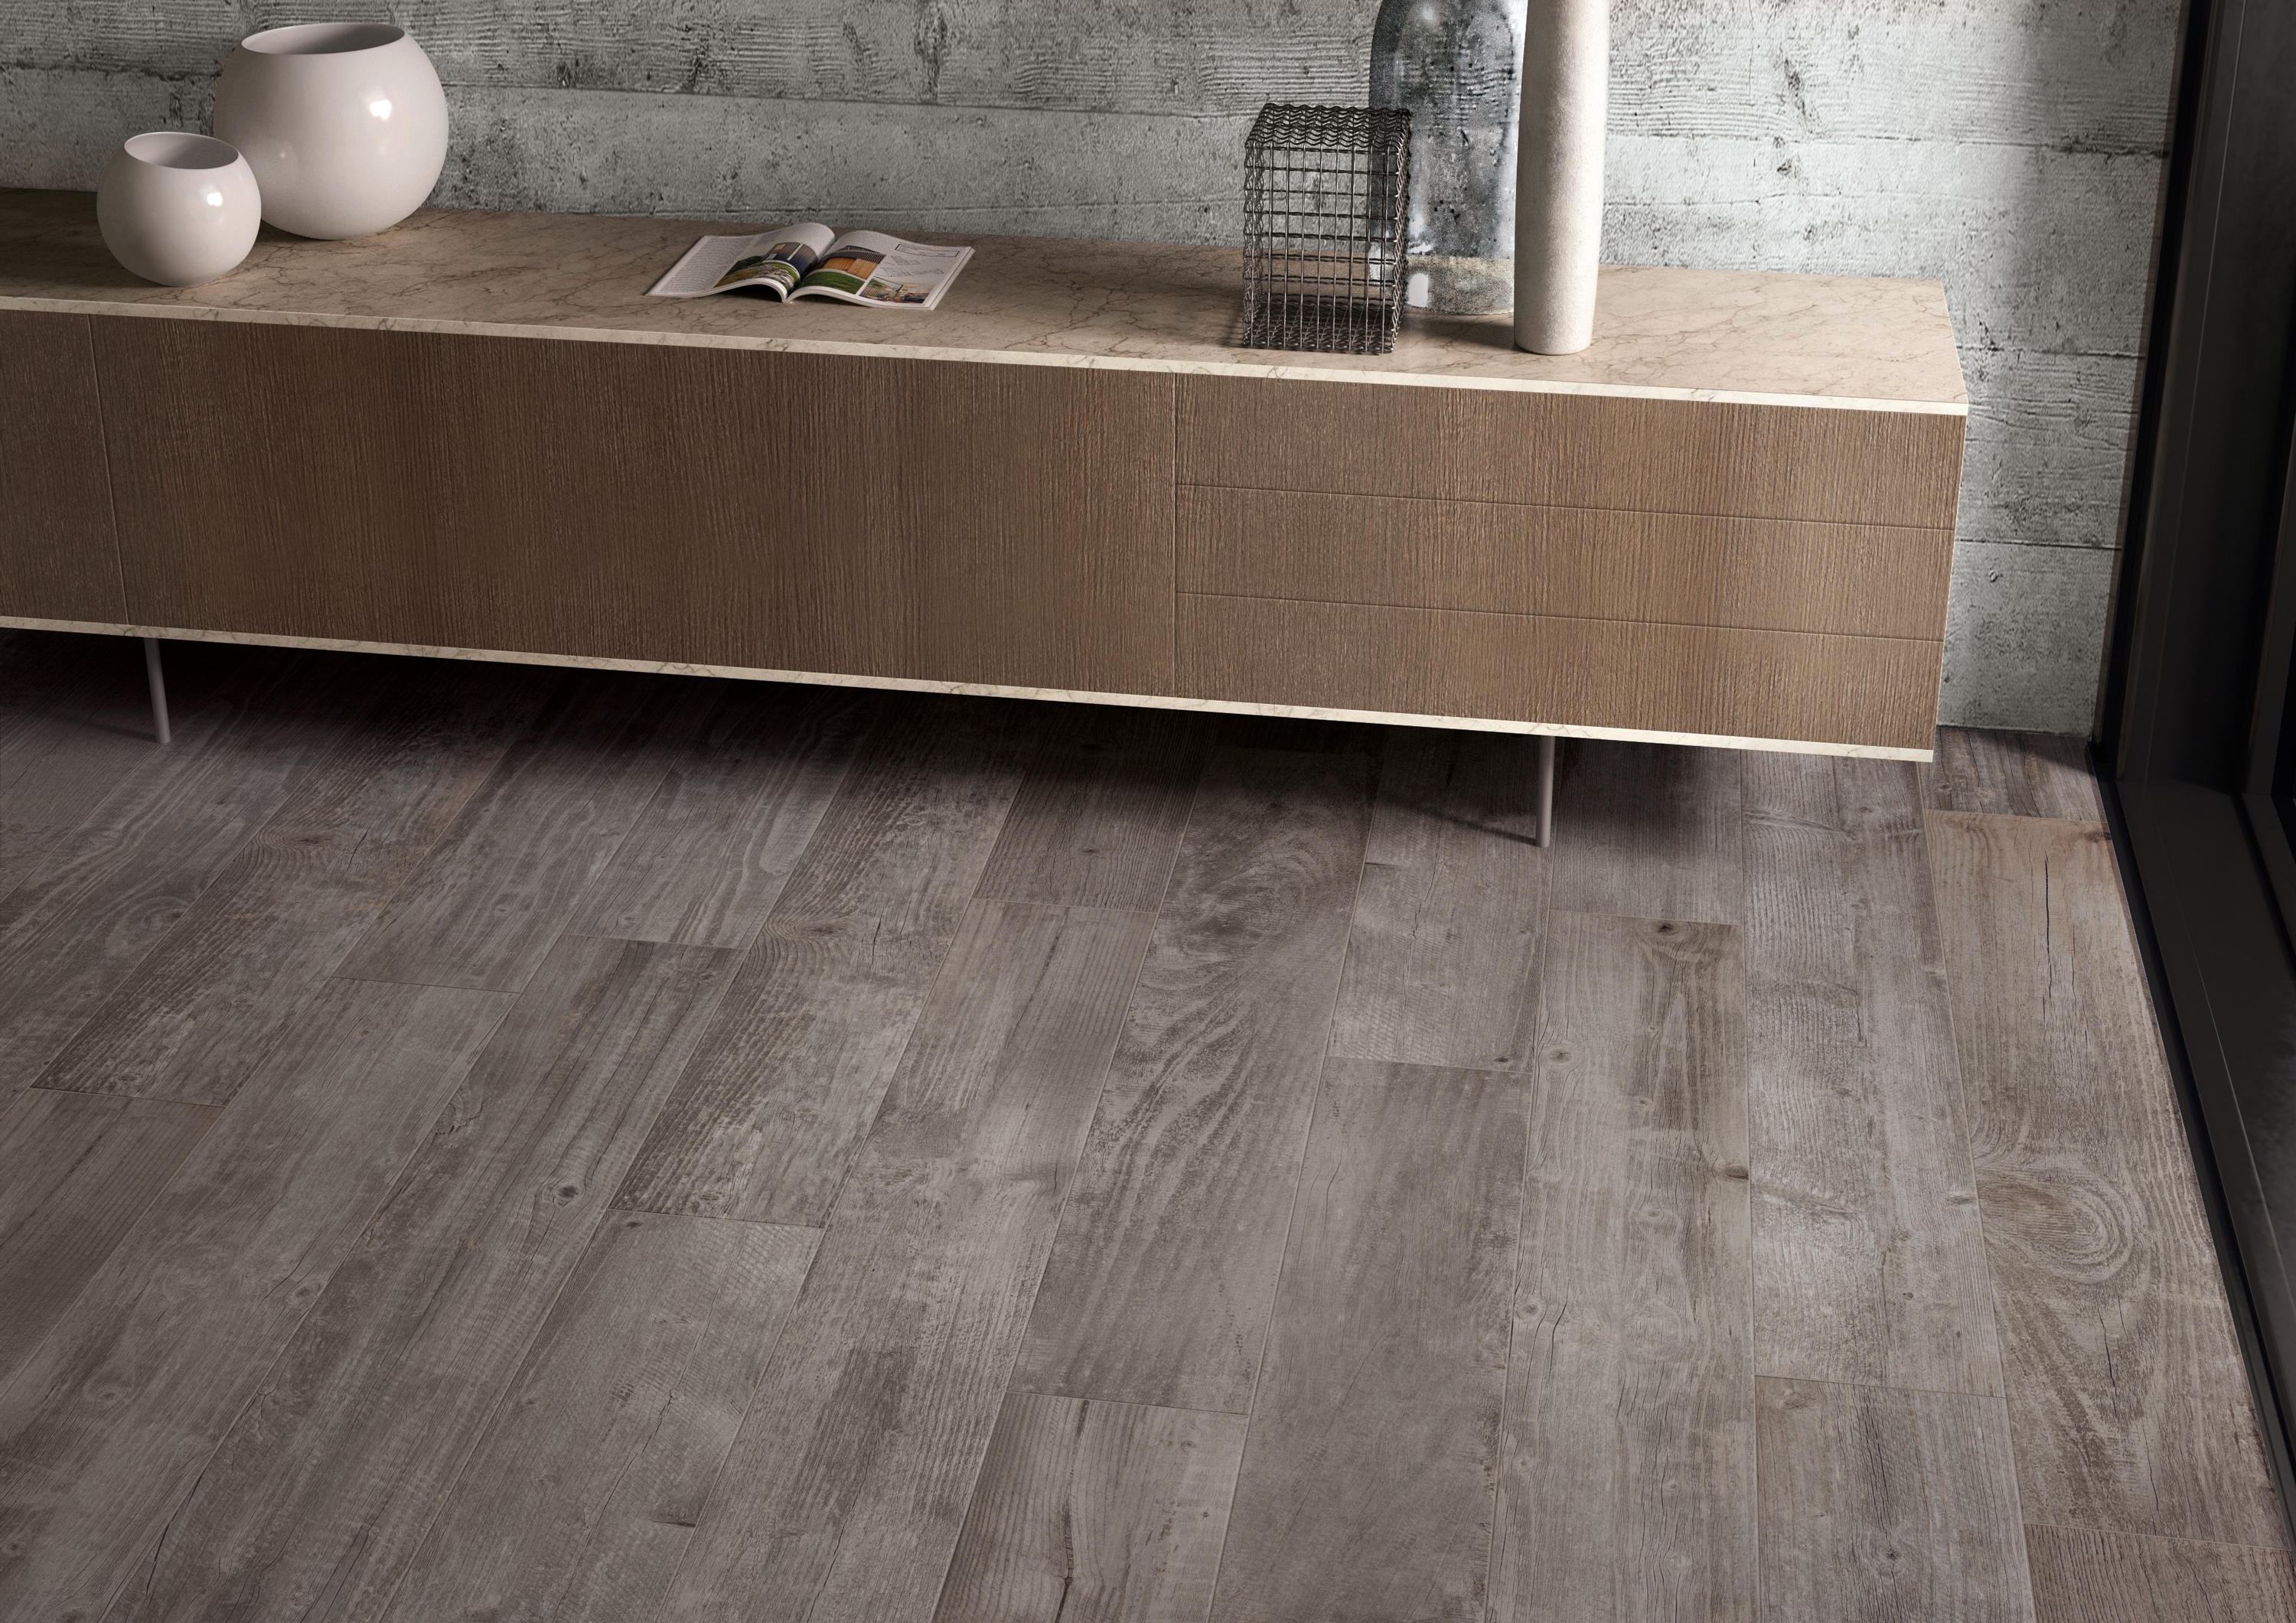 Piastrelle Keope Soul Mosaico Blend Mosaici Ceramica Keope Architonic